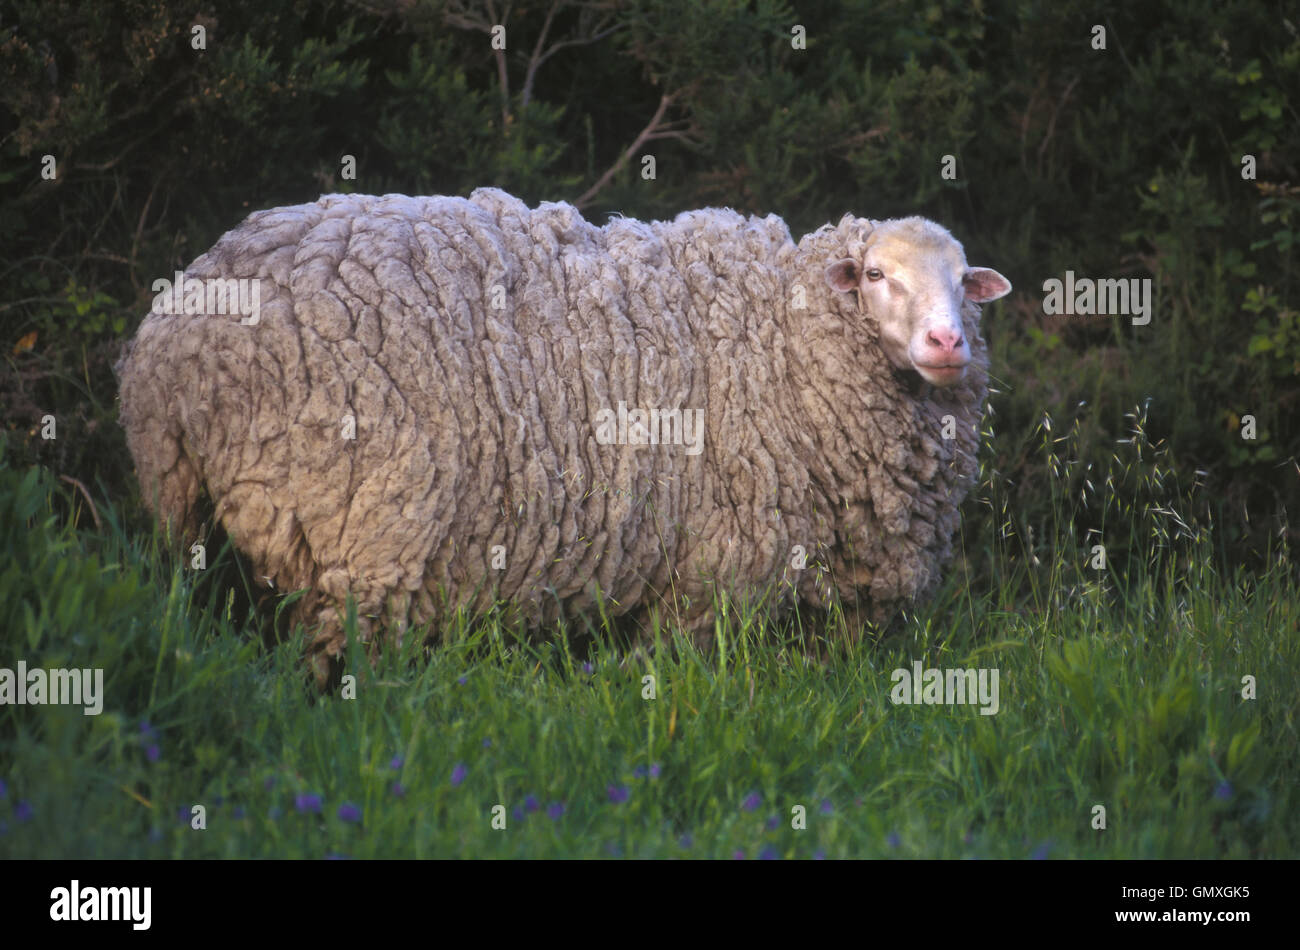 Sheep on the meadow before clipping. Female. Portugal - Stock Image